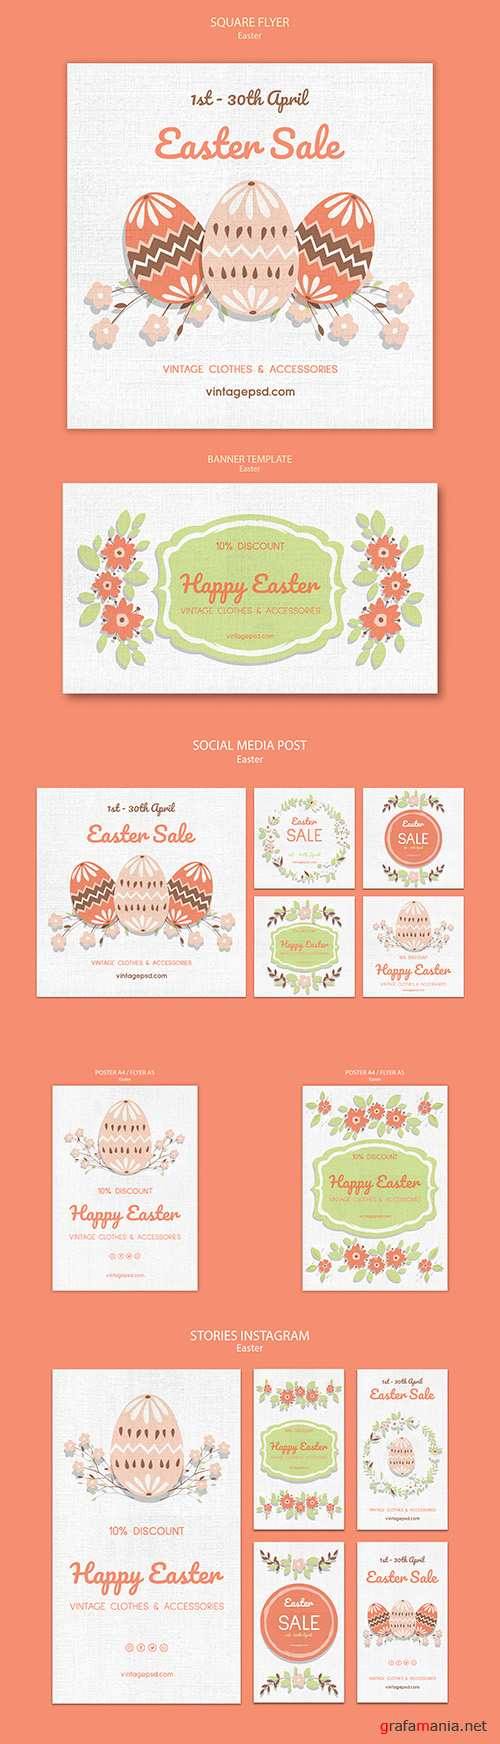 Vintage Easter template social media posts and baneer